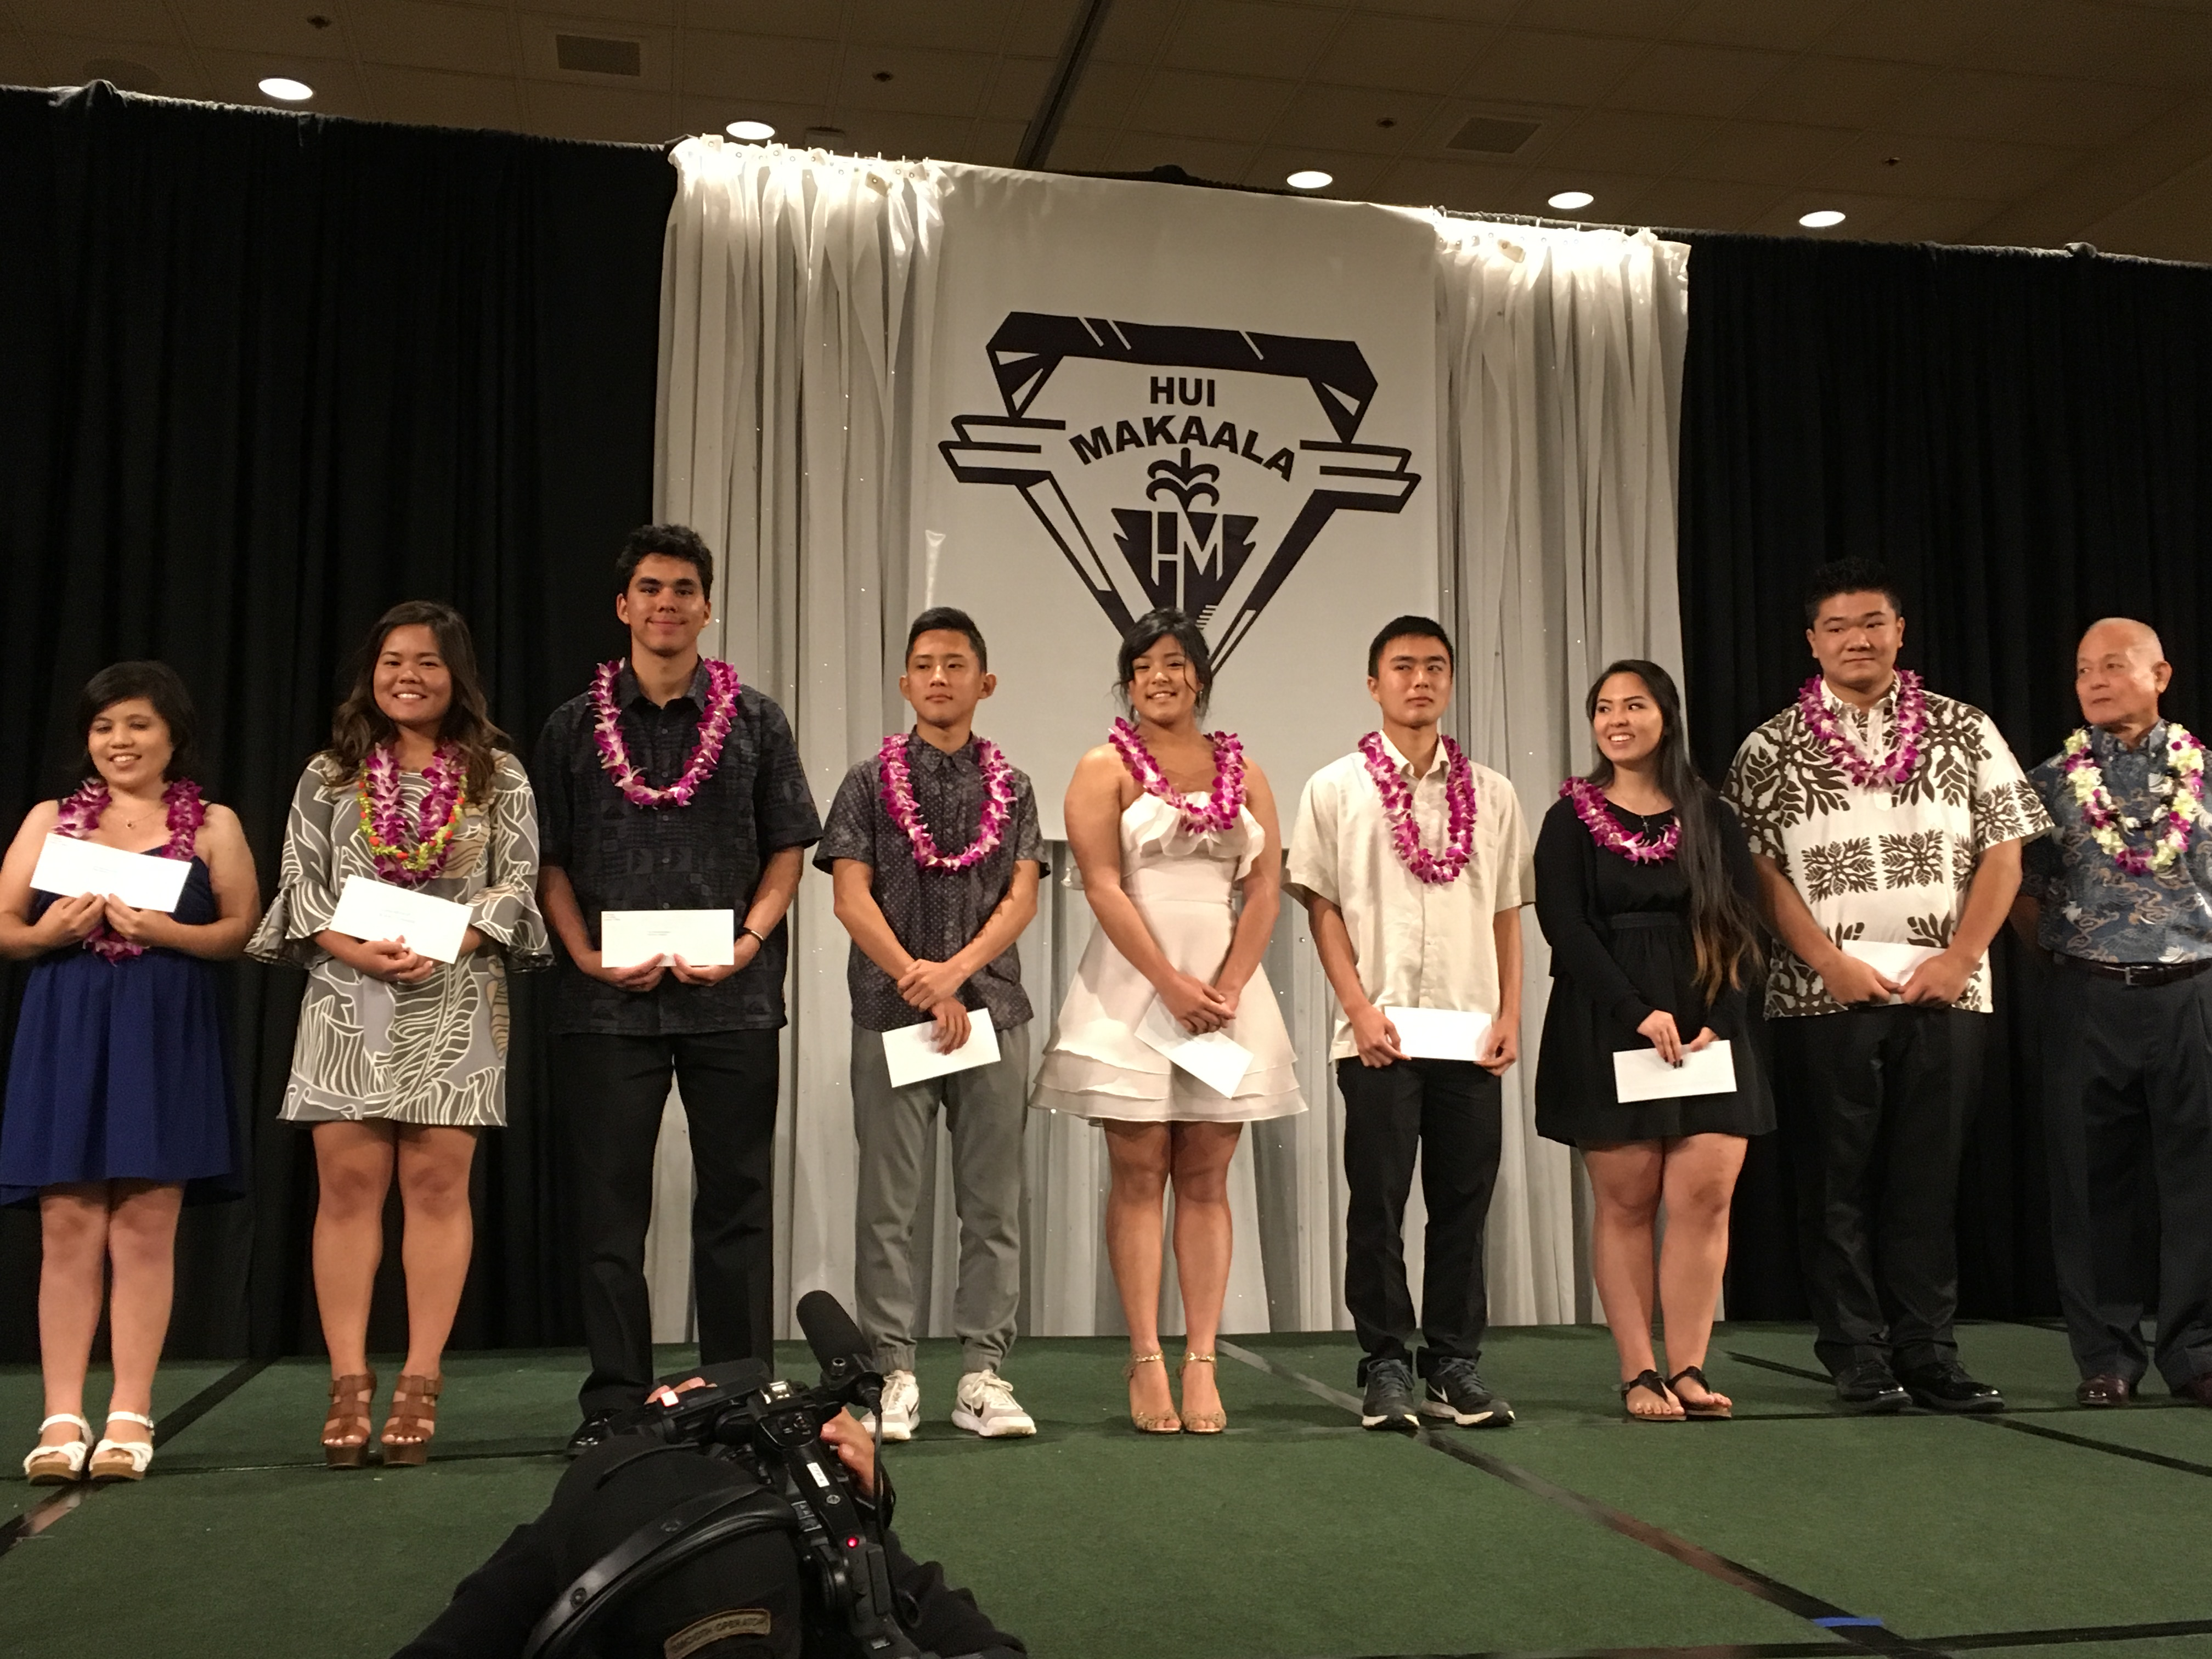 The 2017 Hui Makaala scholarship recipients were recognized at the scholarship fashion show luncheon. They are from left: Briana Campbell, Nikki Chinen, David-John Fernandez, Treyson Furuta, Emma Kojima, Cheyne Tanoue, Kiaria Zoi Nakamura and Dane Yamashiro. Pictured with them is Hui Makaala president Clayton Uza (far right). Not pictured: Sydney Tsukenjo.